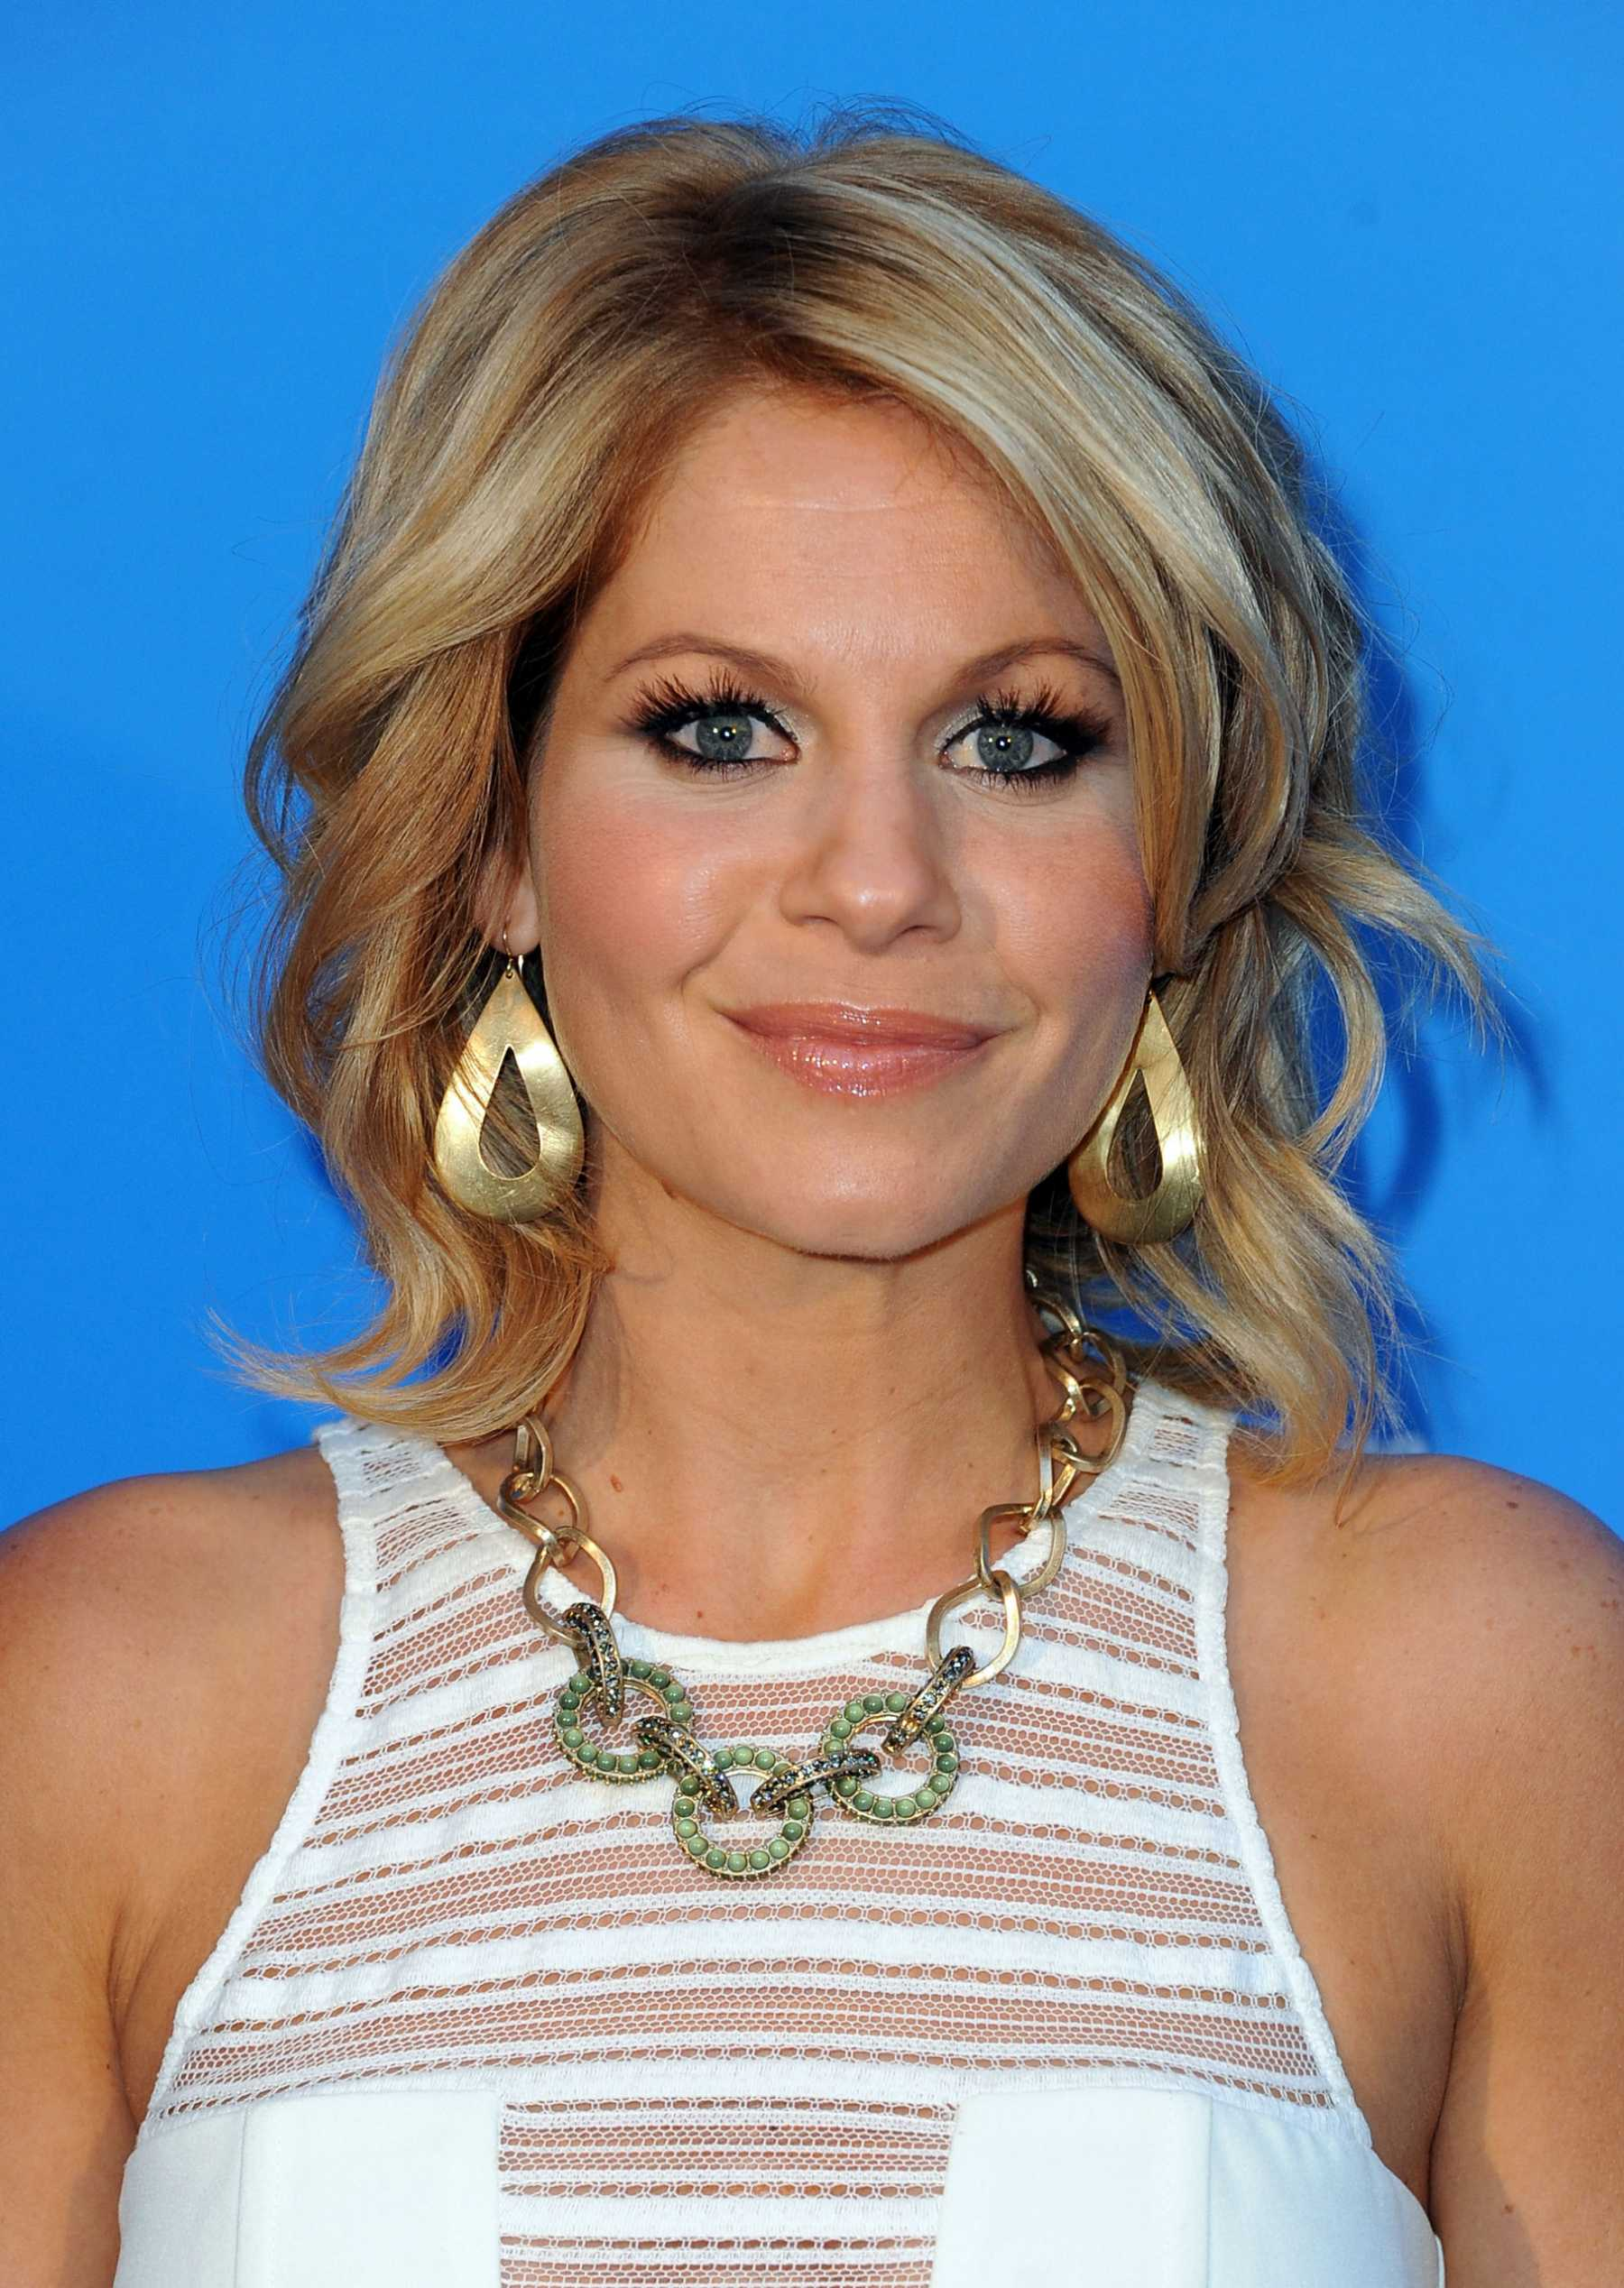 Candace Cameron Bure Talks Twitter, Fan Encounters, And Possibly More Full House In The Future??